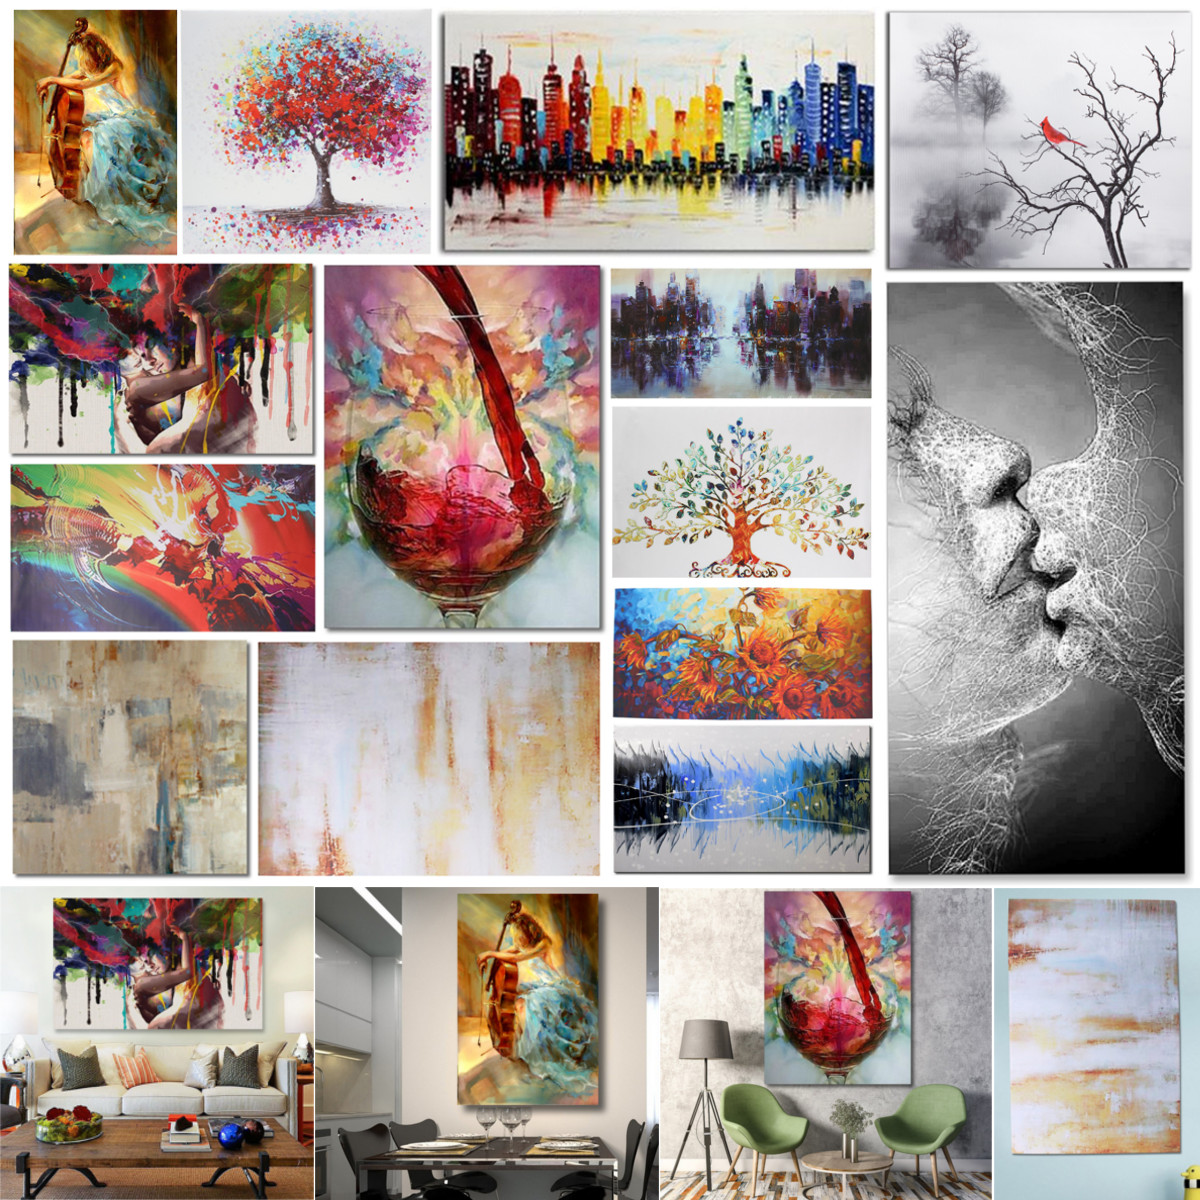 details about unframed framed modern feel canvas print painting picture wall art home decor uk rh ebay co uk